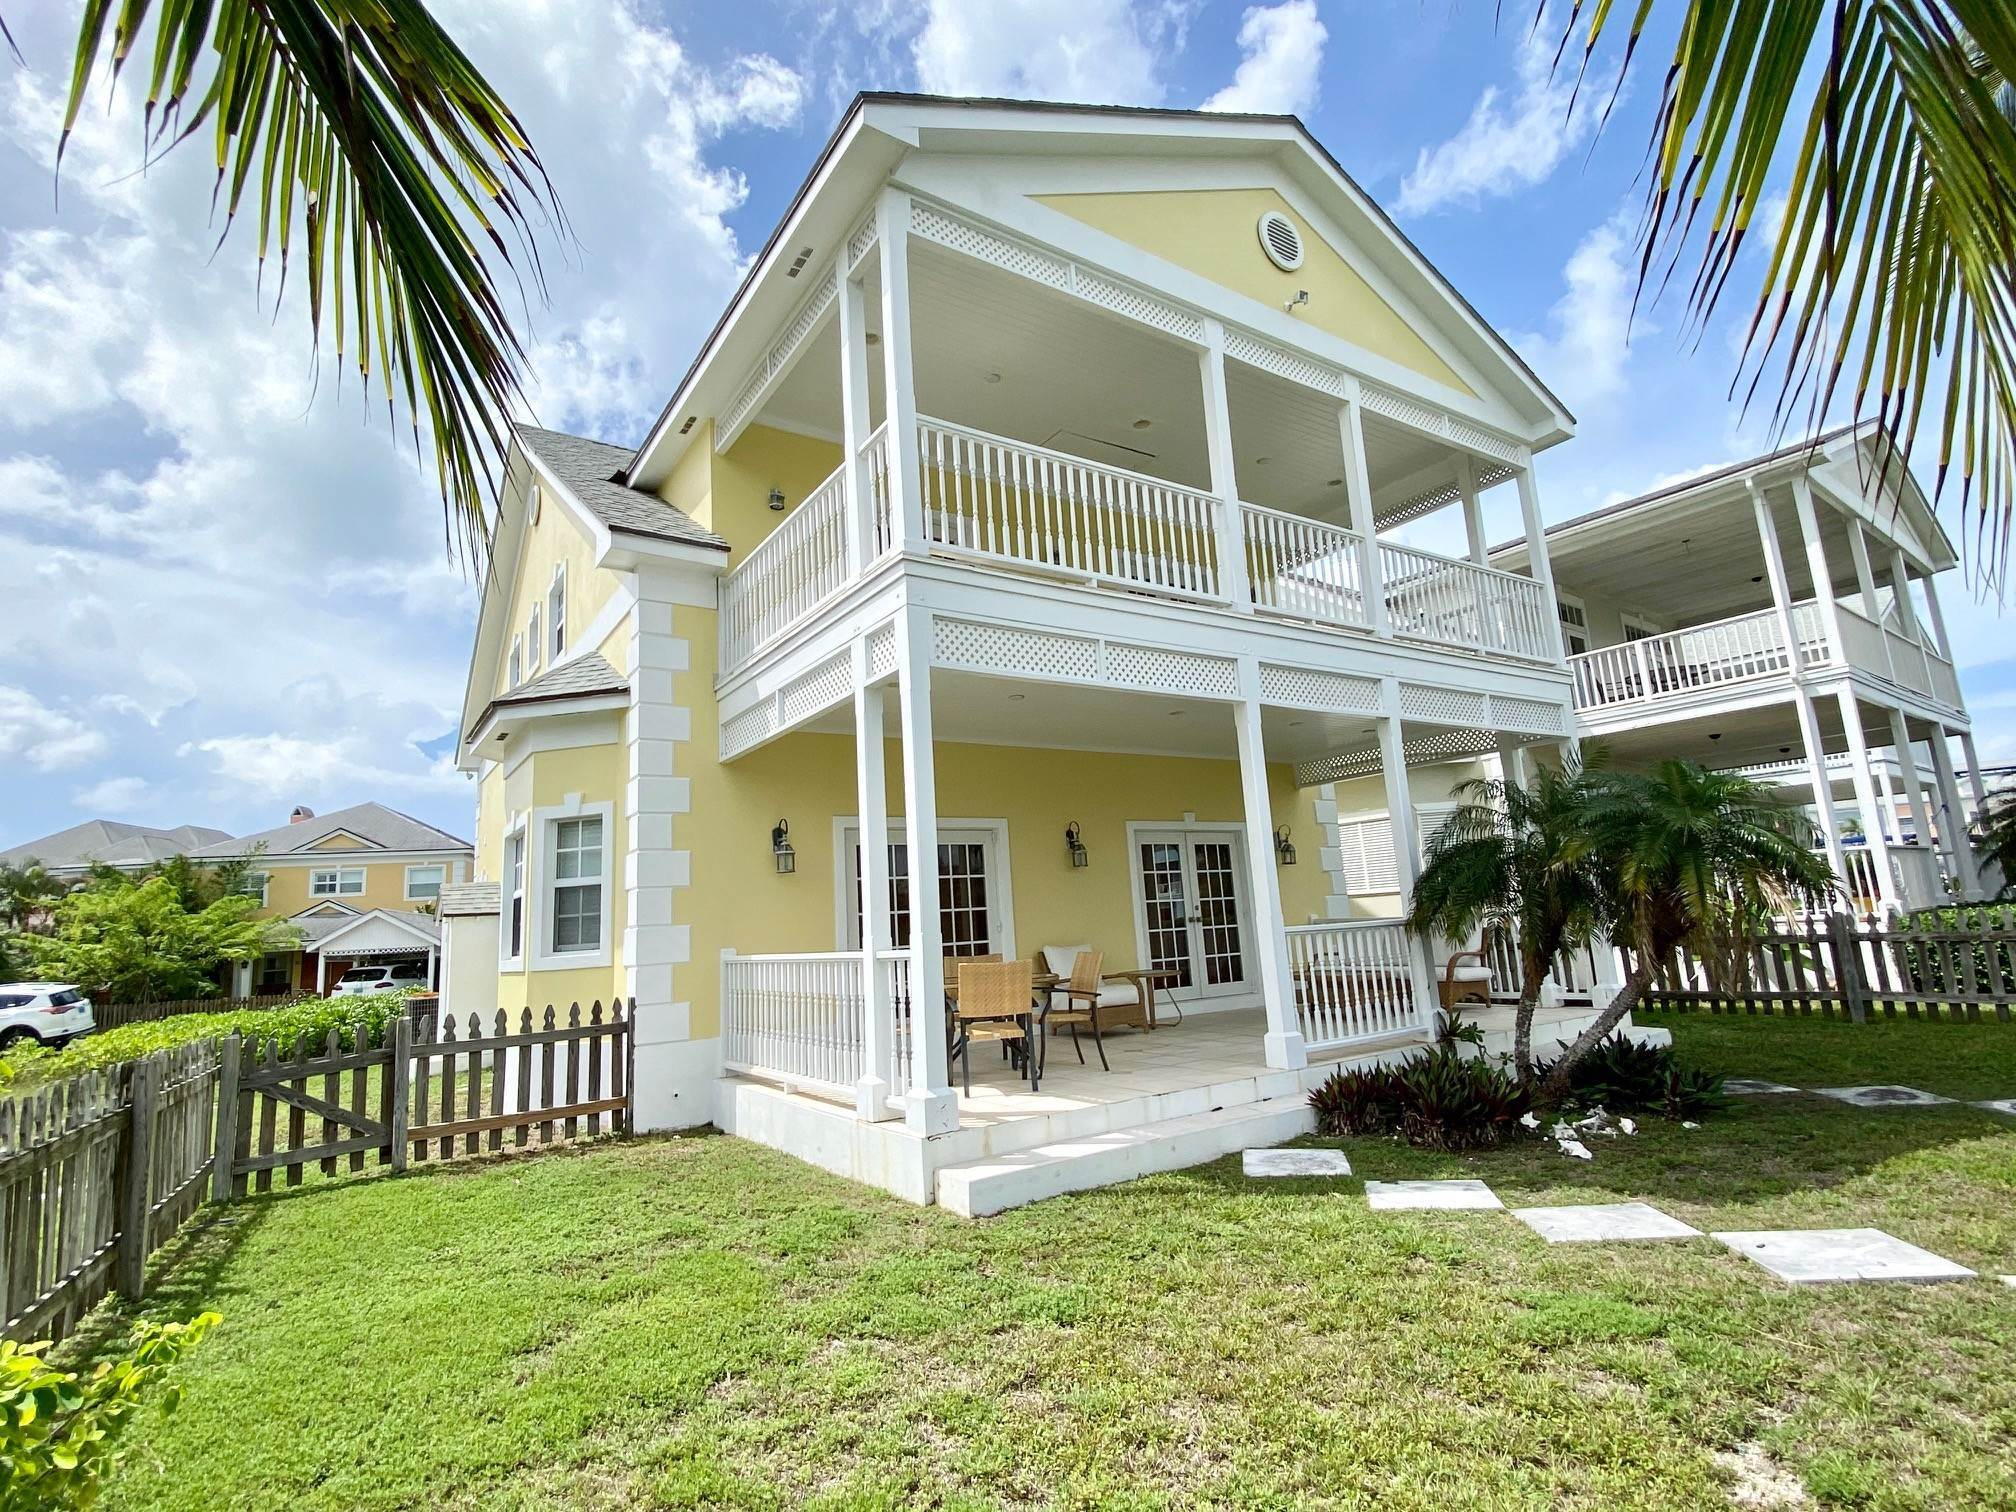 Single Family Homes for Rent at Executive 3 bedroom plus office/4th bedroom with dock in Sandyport Sandyport, Cable Beach, Nassau And Paradise Island Bahamas